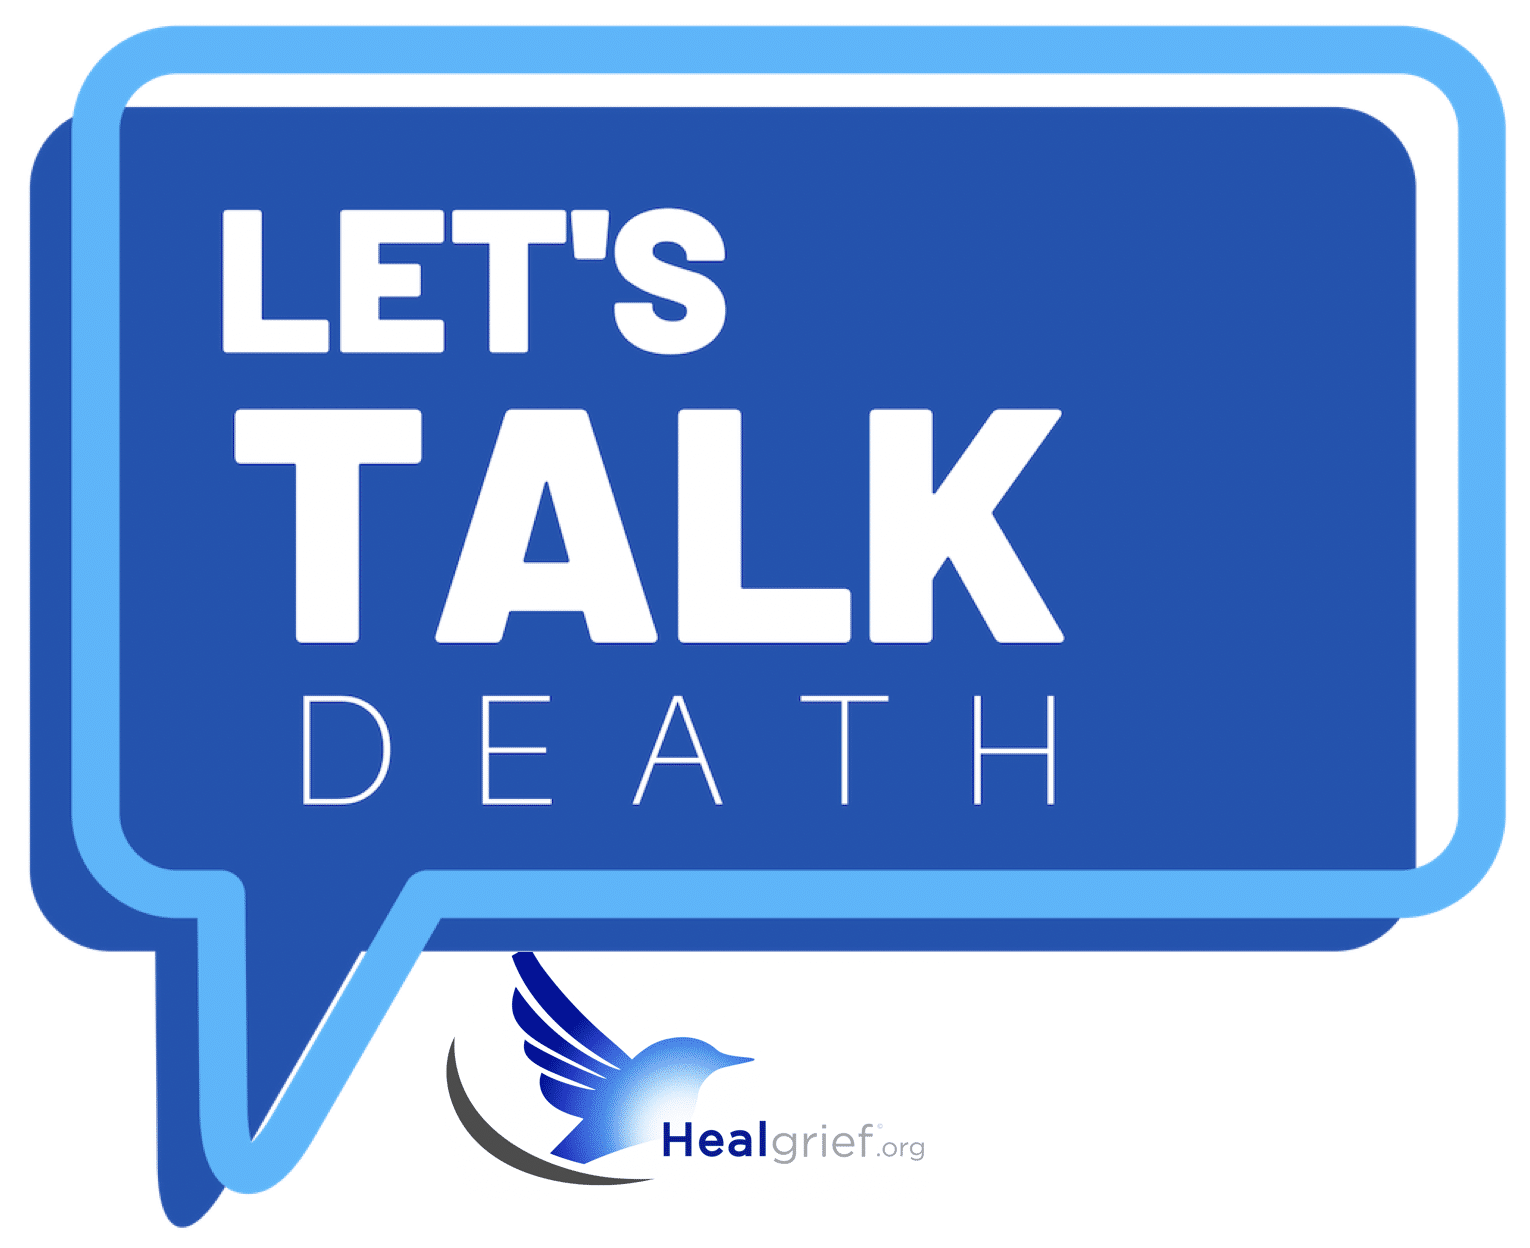 Let's Talk Death